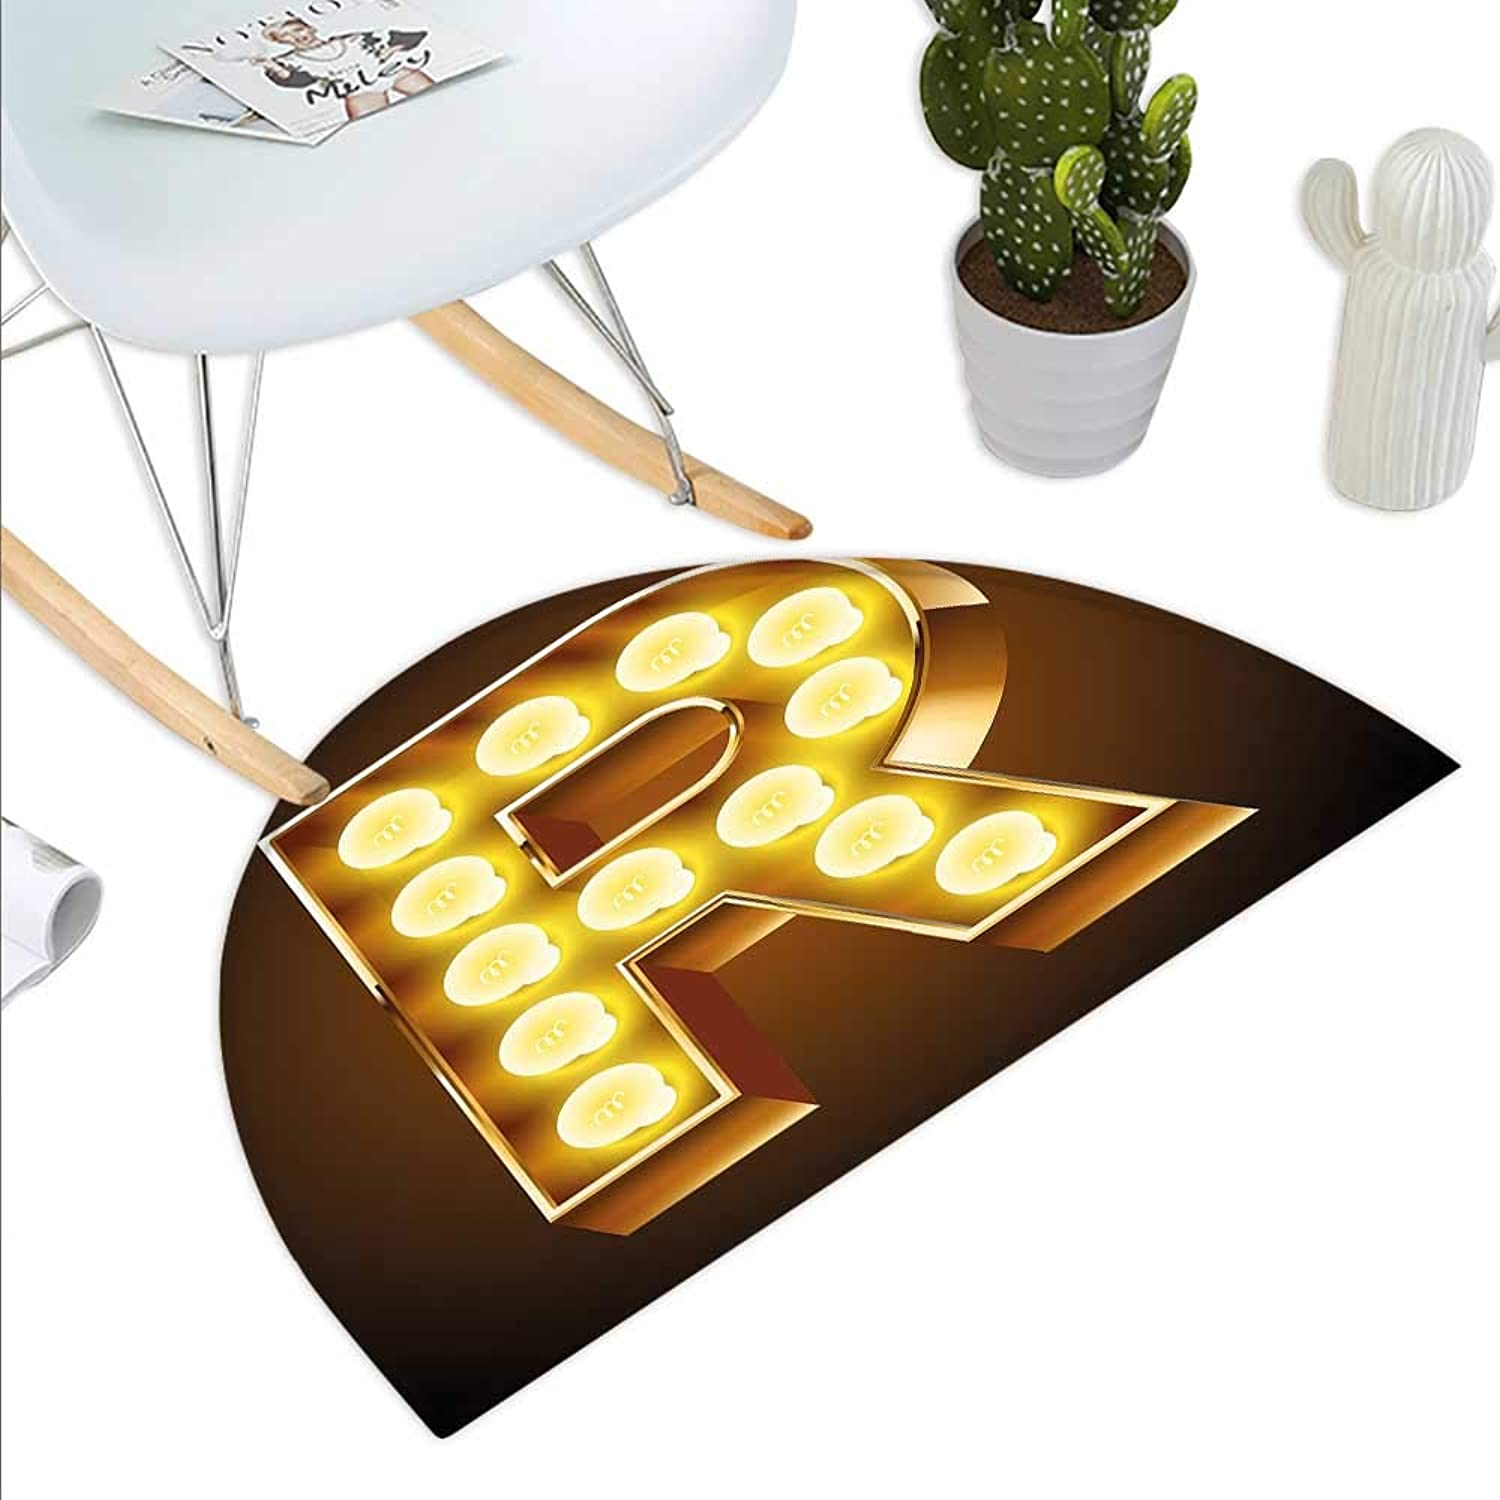 Letter R Semicircle Doormat Old Carnival Themed Alphabet Symbol Capital R golden colord Image Print Halfmoon doormats H 43.3  xD 64.9  Caramel gold Yellow